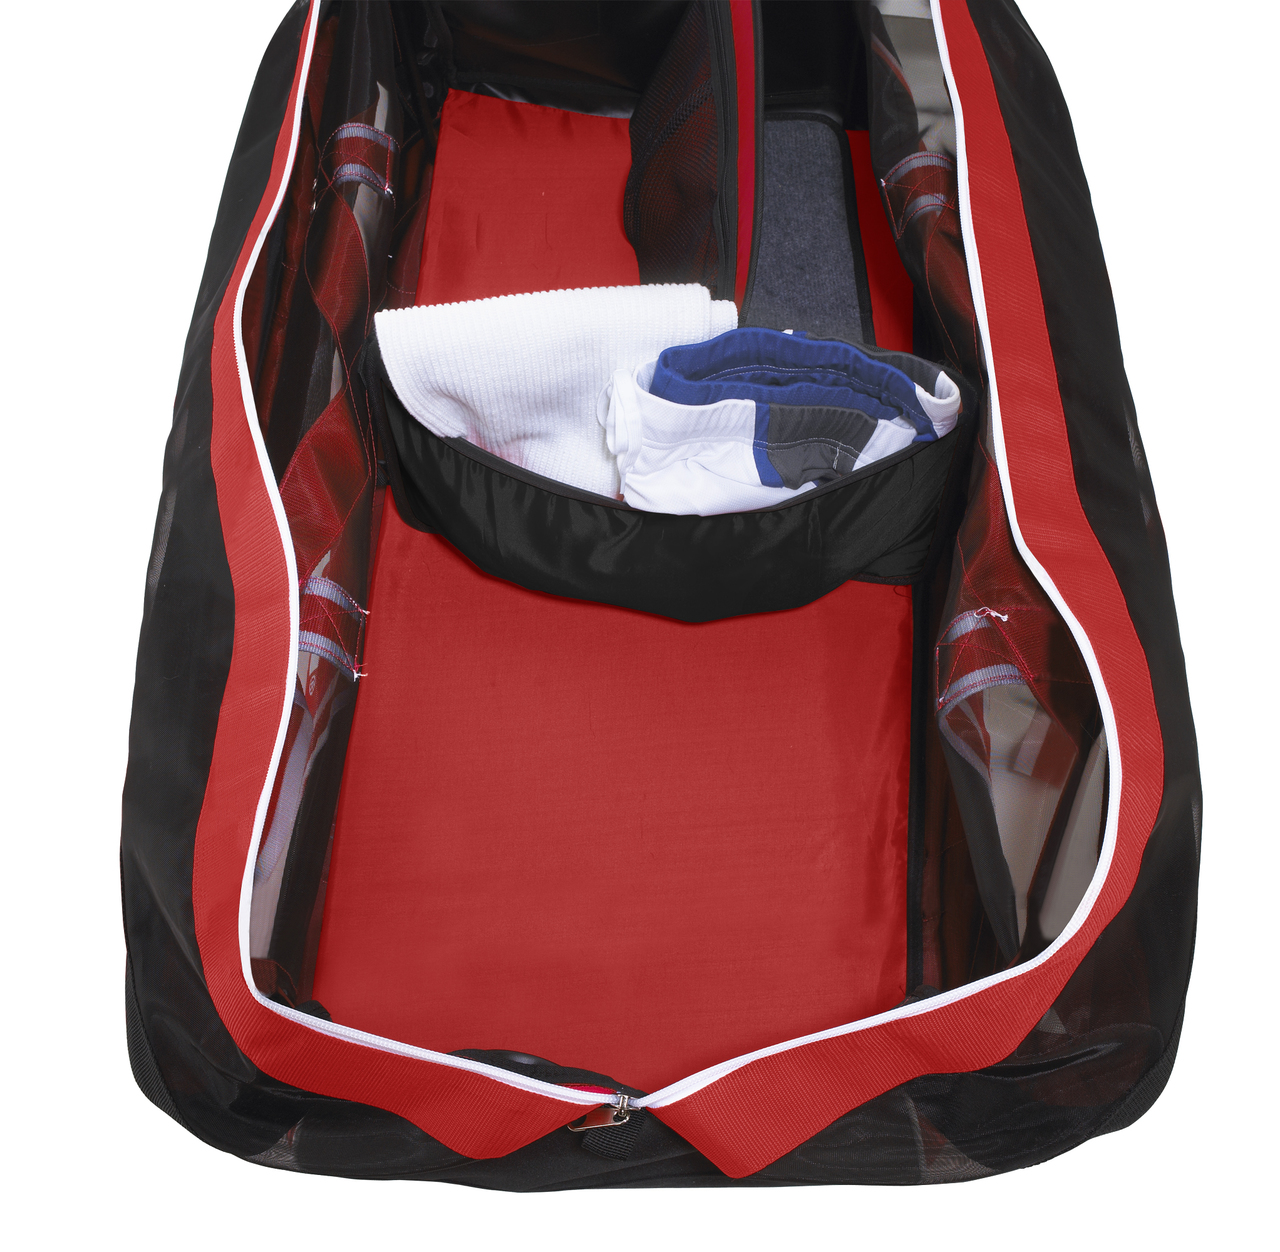 AirBox Hockey Bag